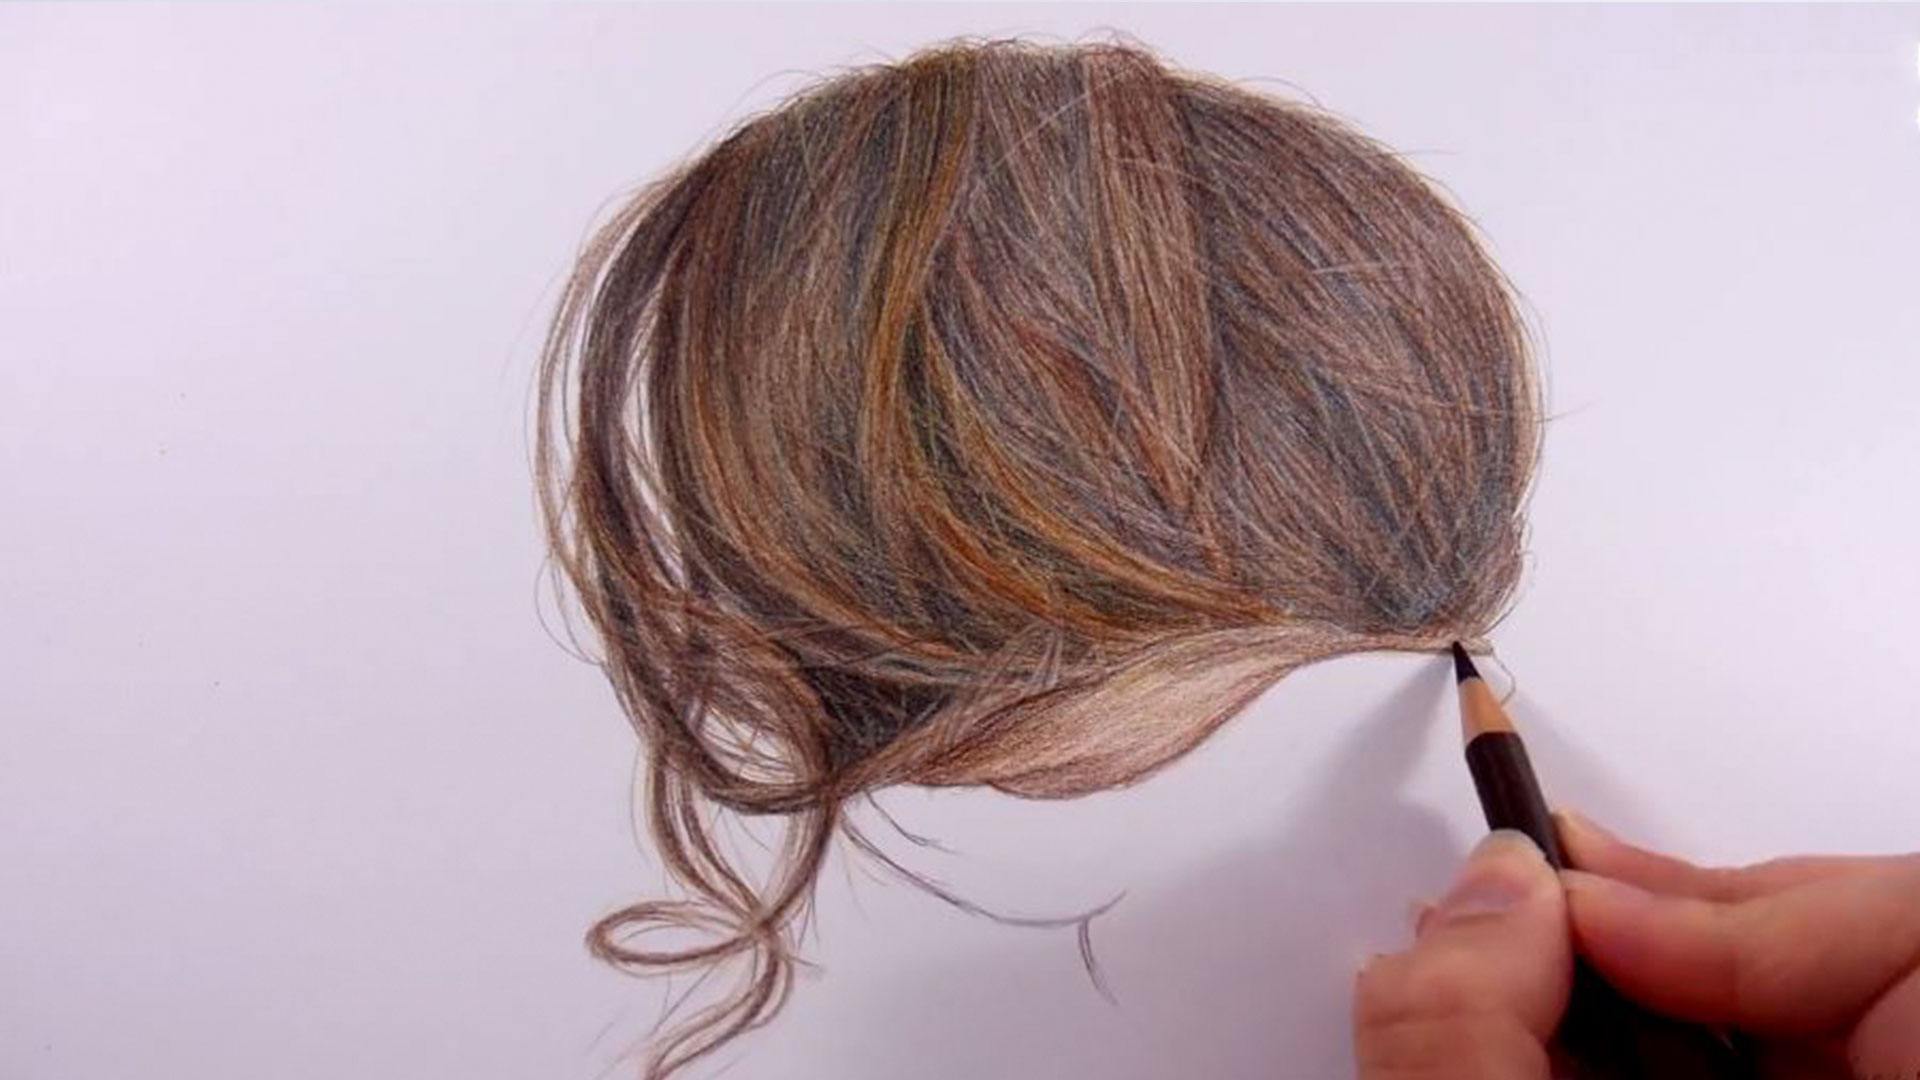 Unbelievably Realistic Hair Drawn Using 8 Colored Pencils